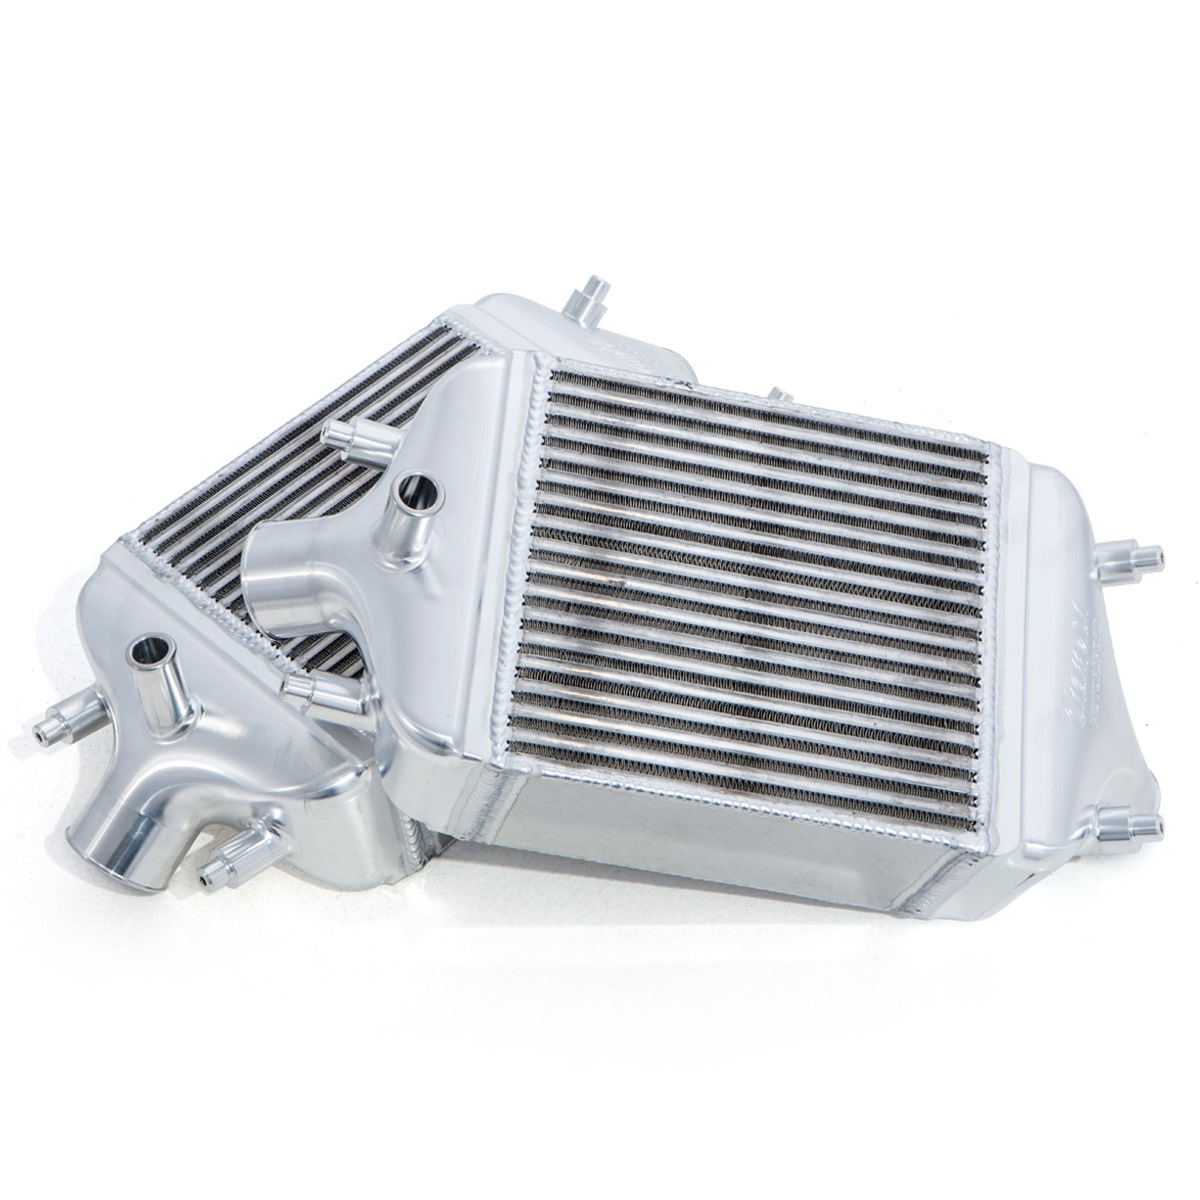 champion motorsport porsche 991 turbo turbo s intercooler upgrade kit. Black Bedroom Furniture Sets. Home Design Ideas